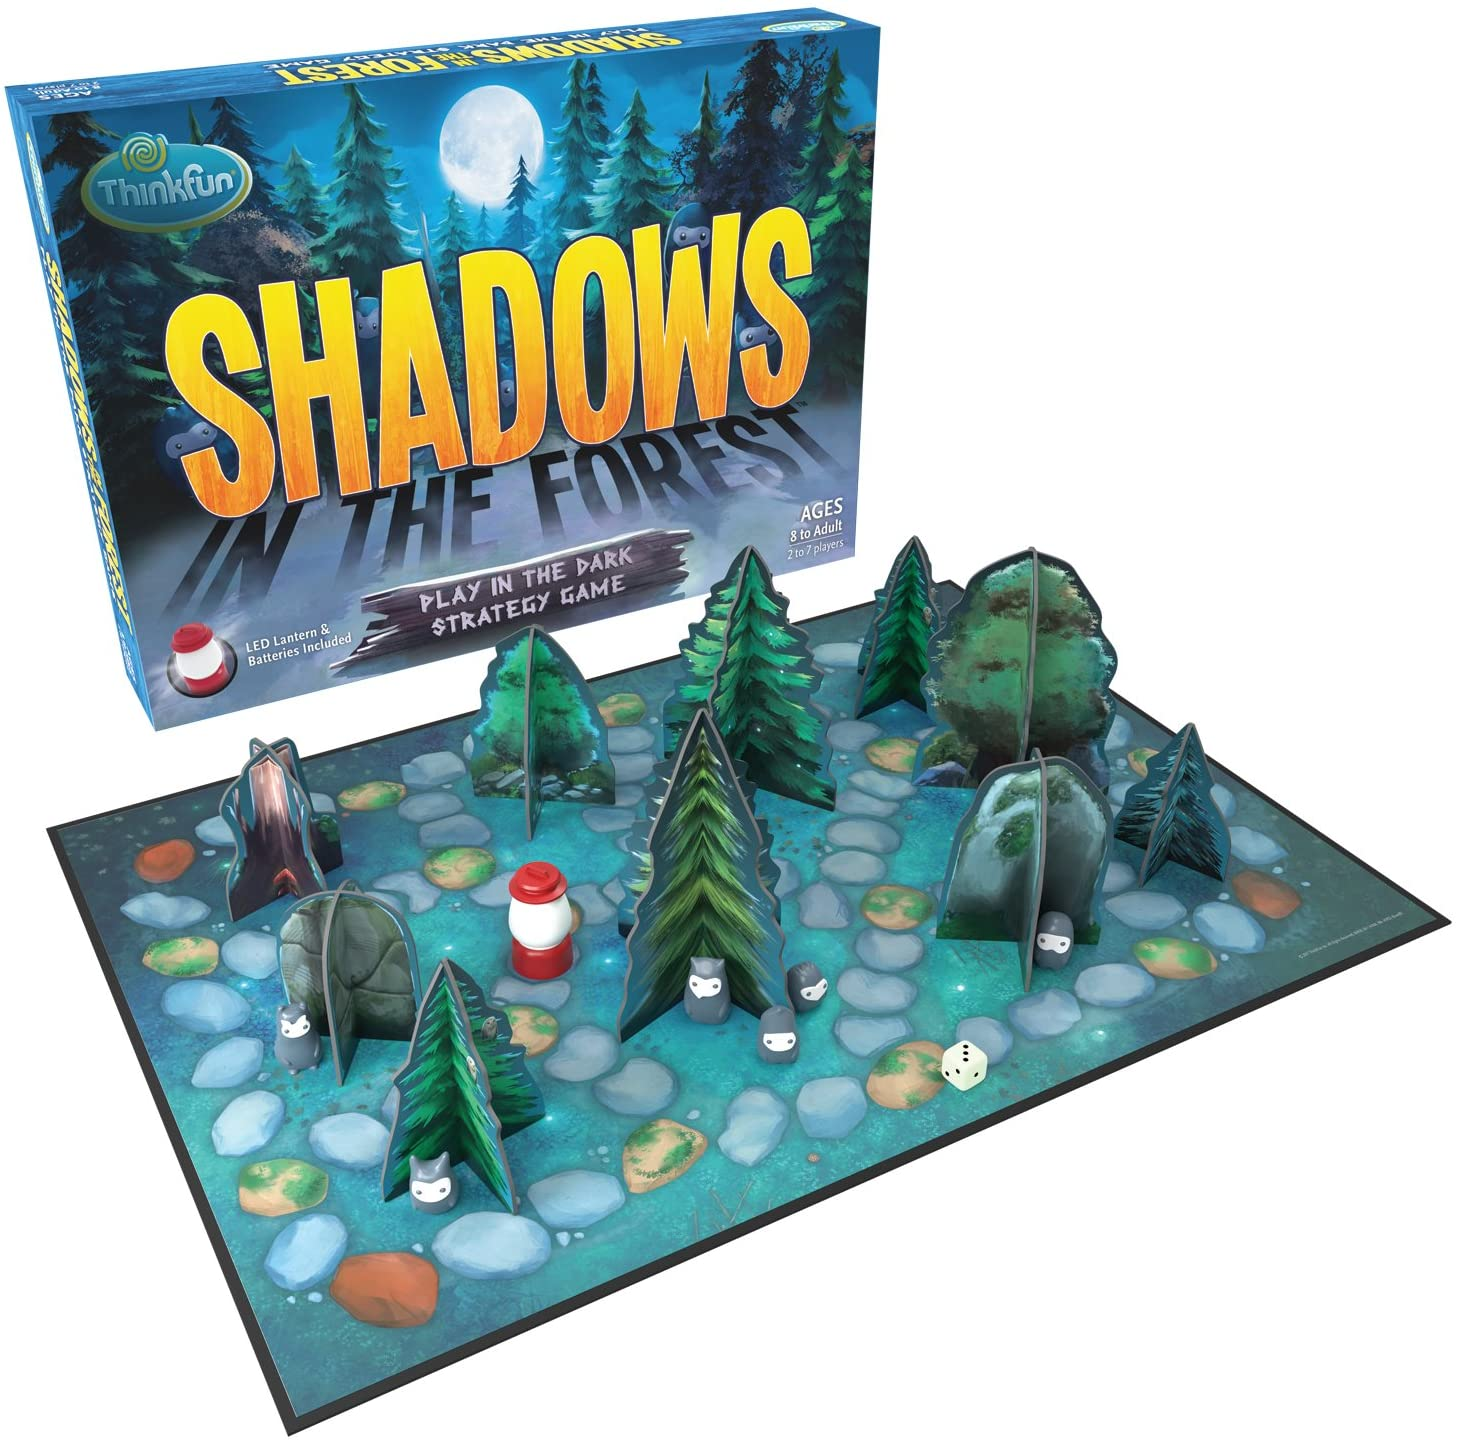 ThinkFun Shadows in the Forest Play in the Dark Board Game for Kids and Families Age 8 and Up - Fun and Easy to Learn with Innovative and Unique Gameplay